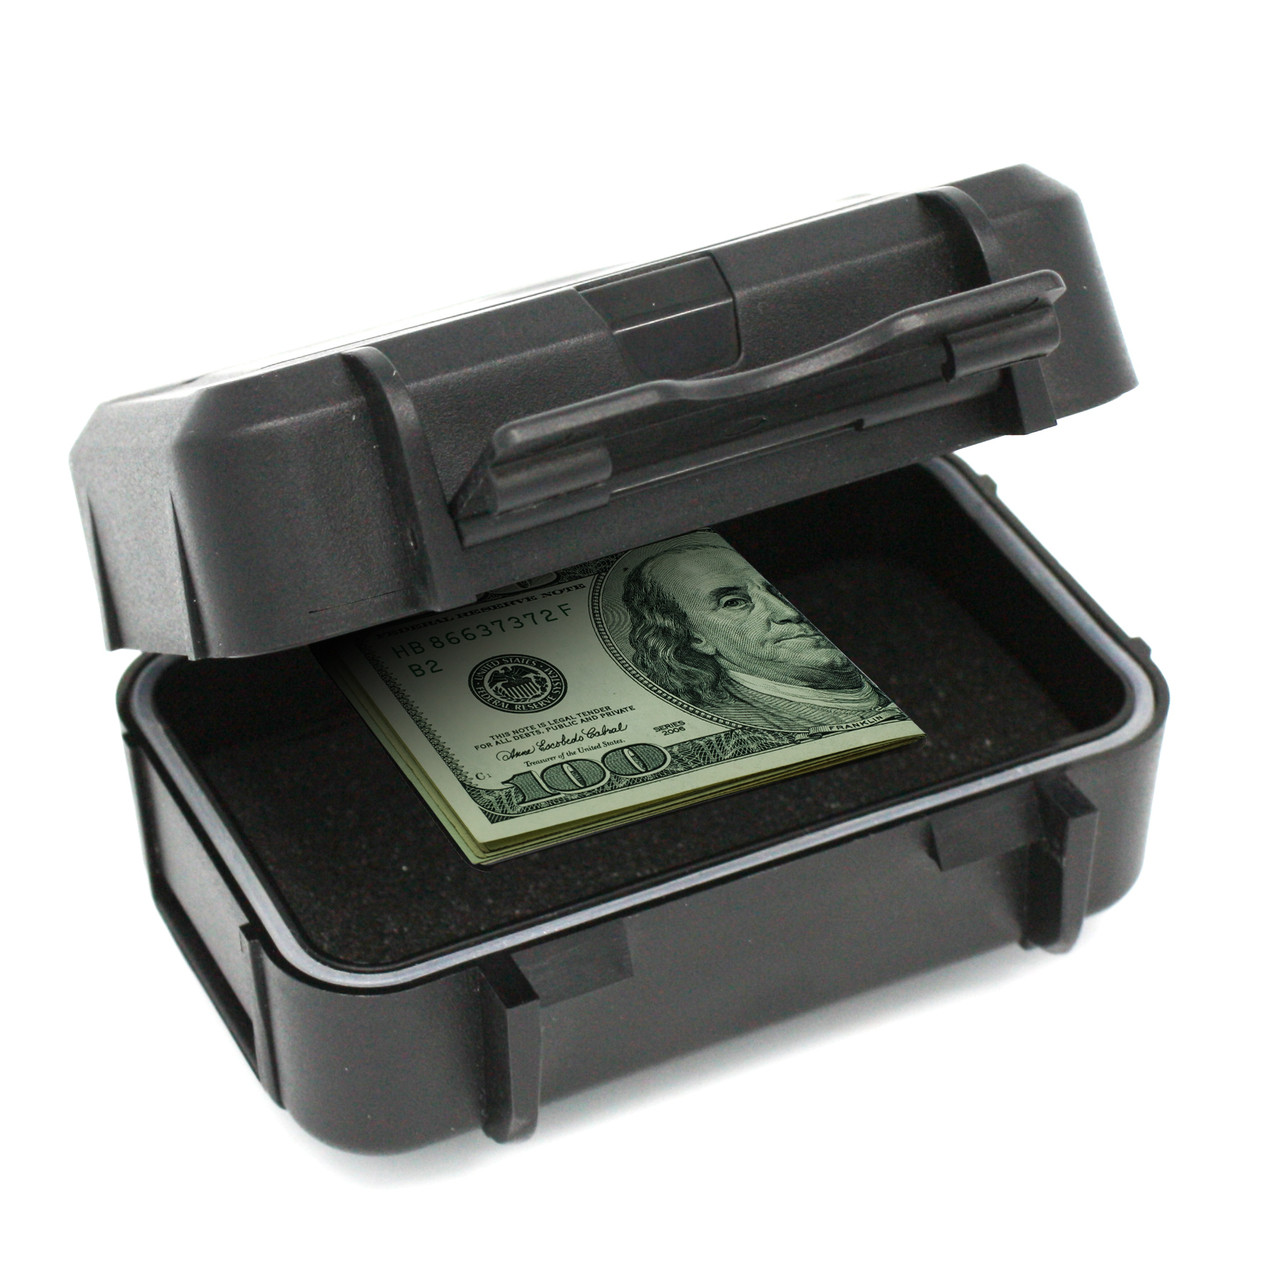 E1090 iTrail® Roc Box Money Inside